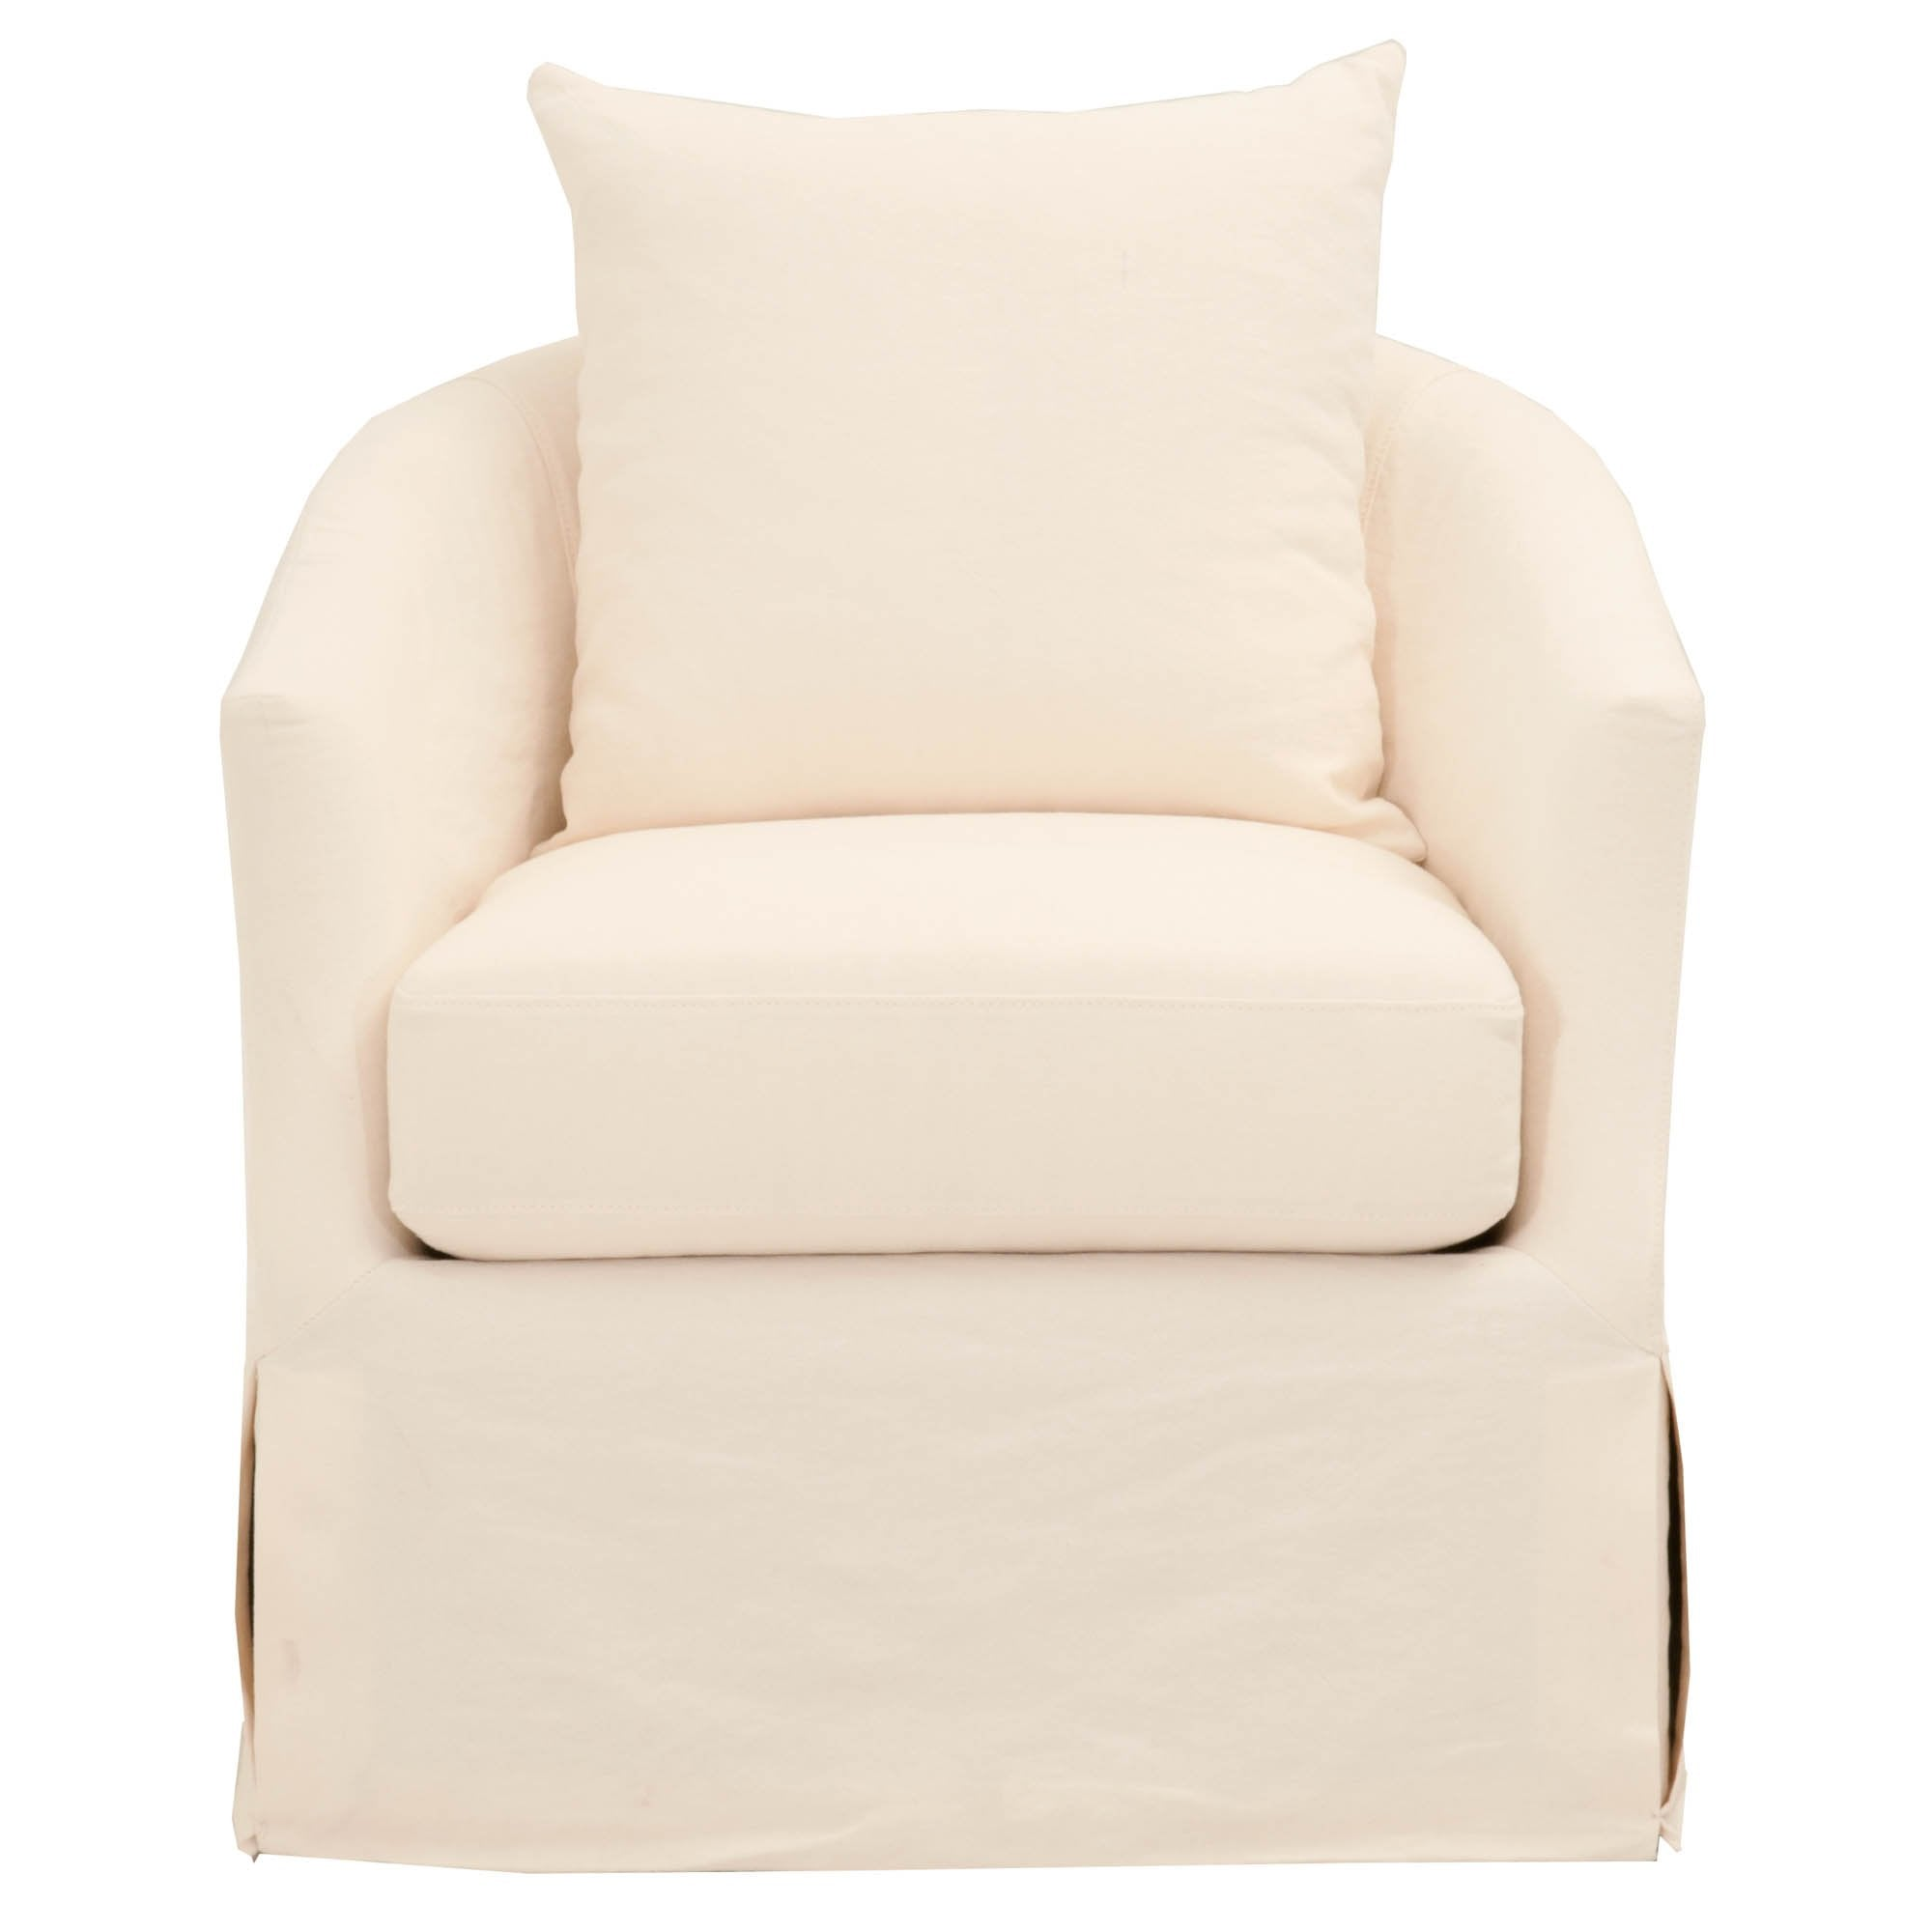 Faye Slipcover Swivel Club Chair in Cream Crepe Fabric